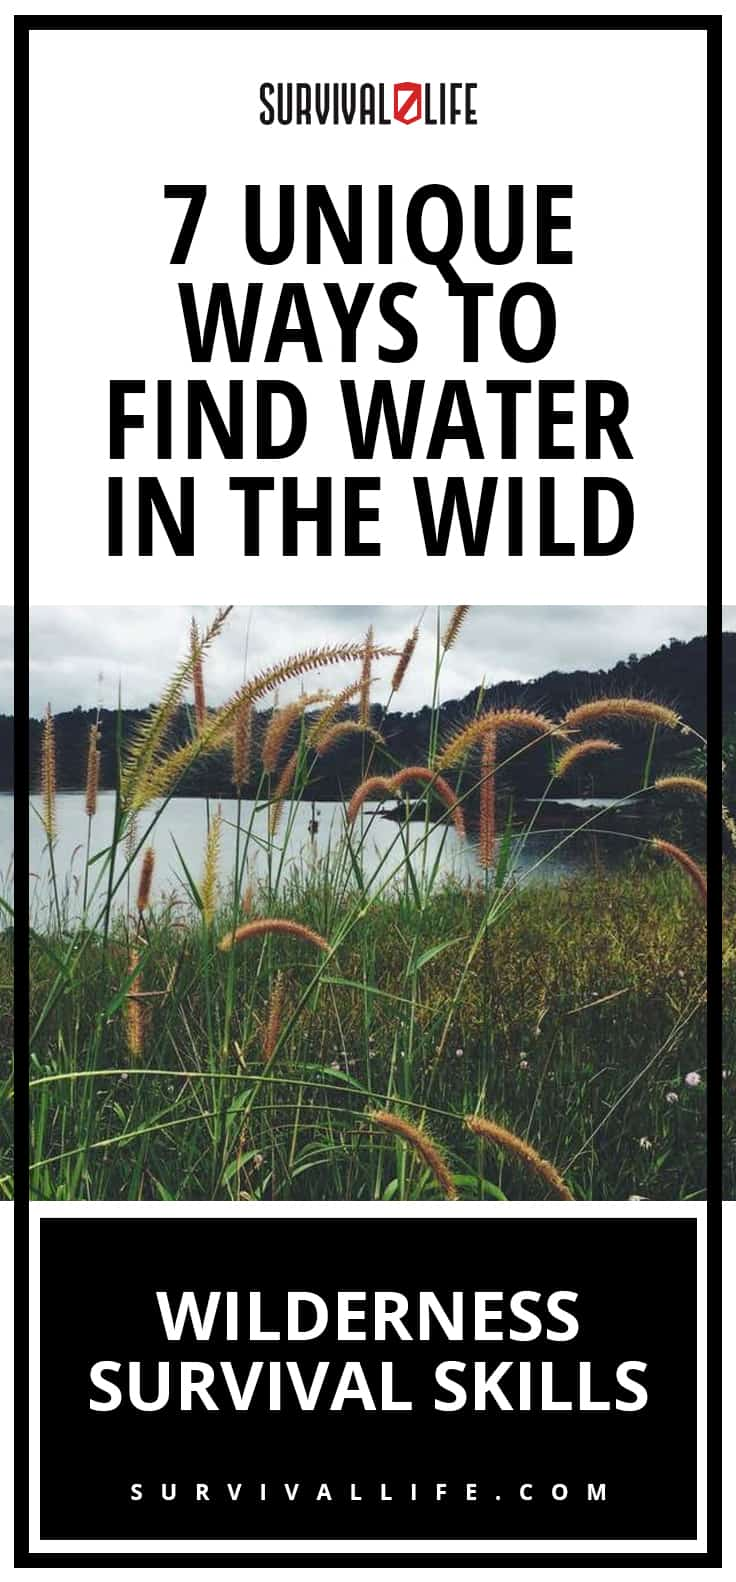 Wilderness Survival Skills | 7 Unique Ways To Find Water In The Wild